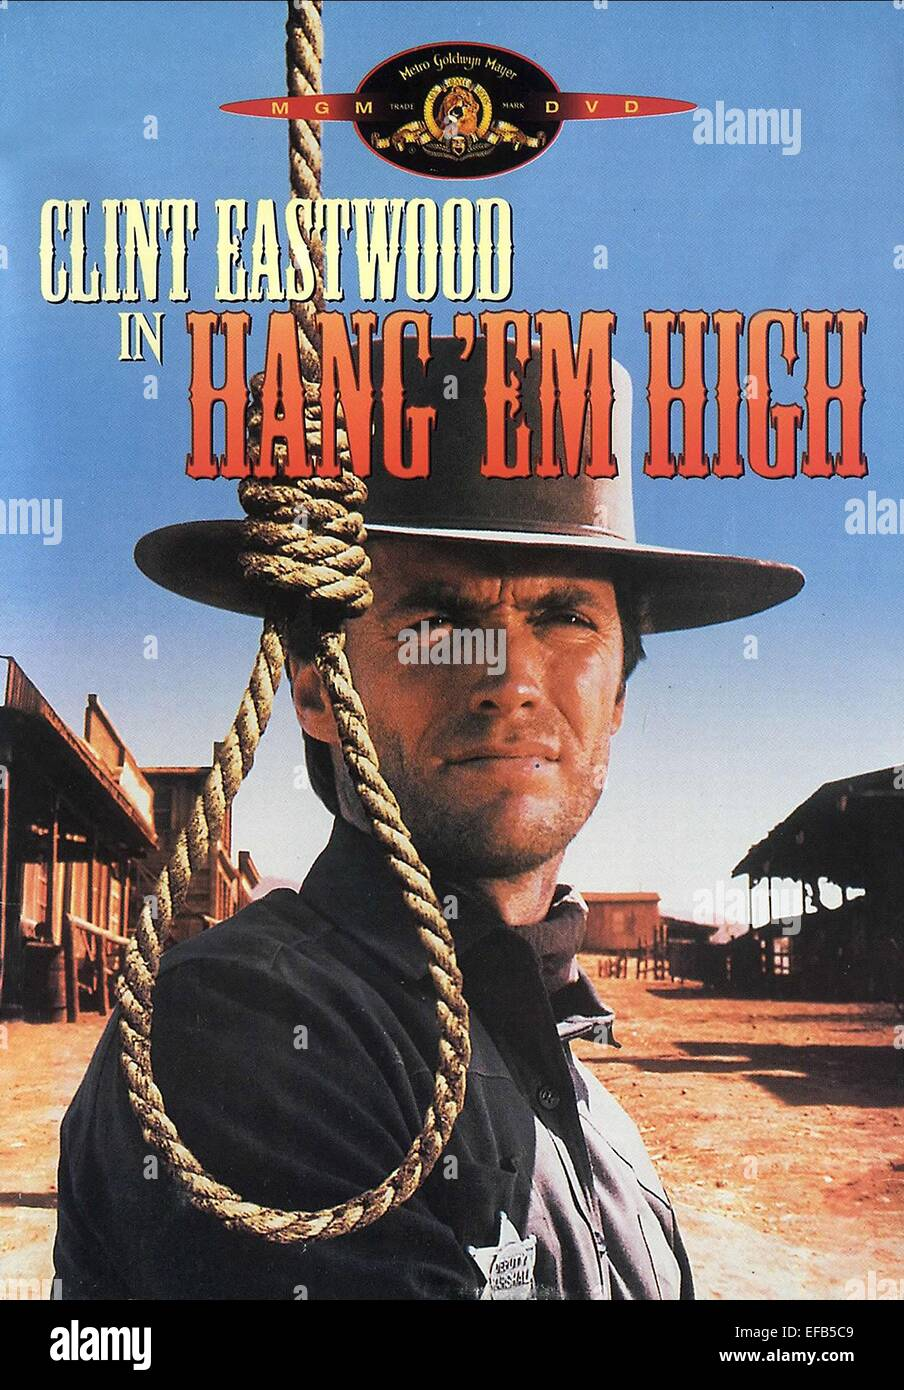 Clint eastwood the hustler poster